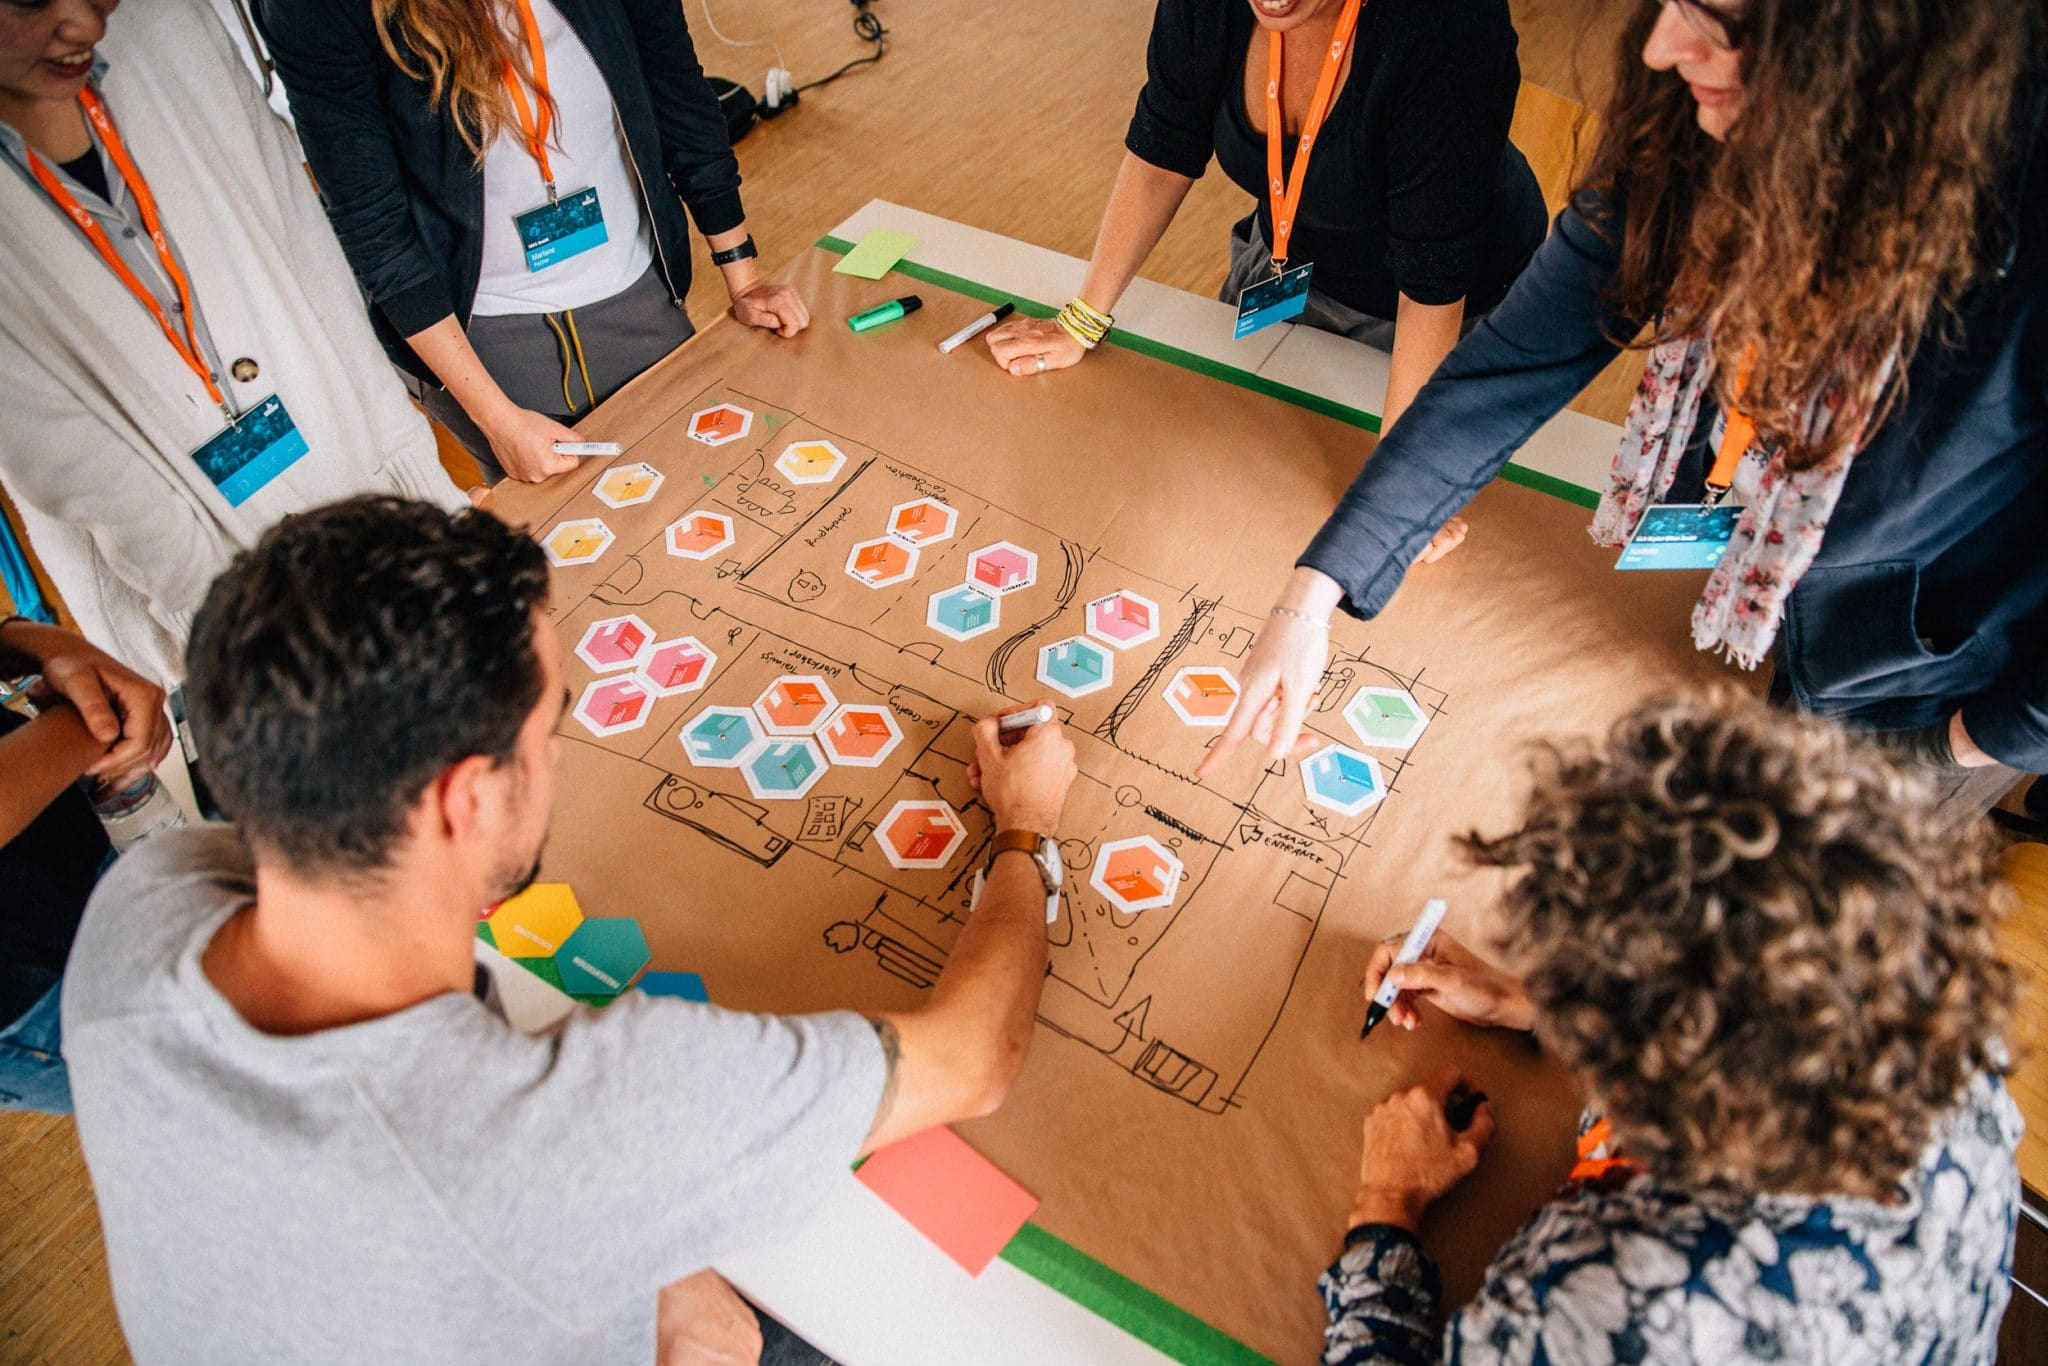 UX-DAY 2018 Workshop